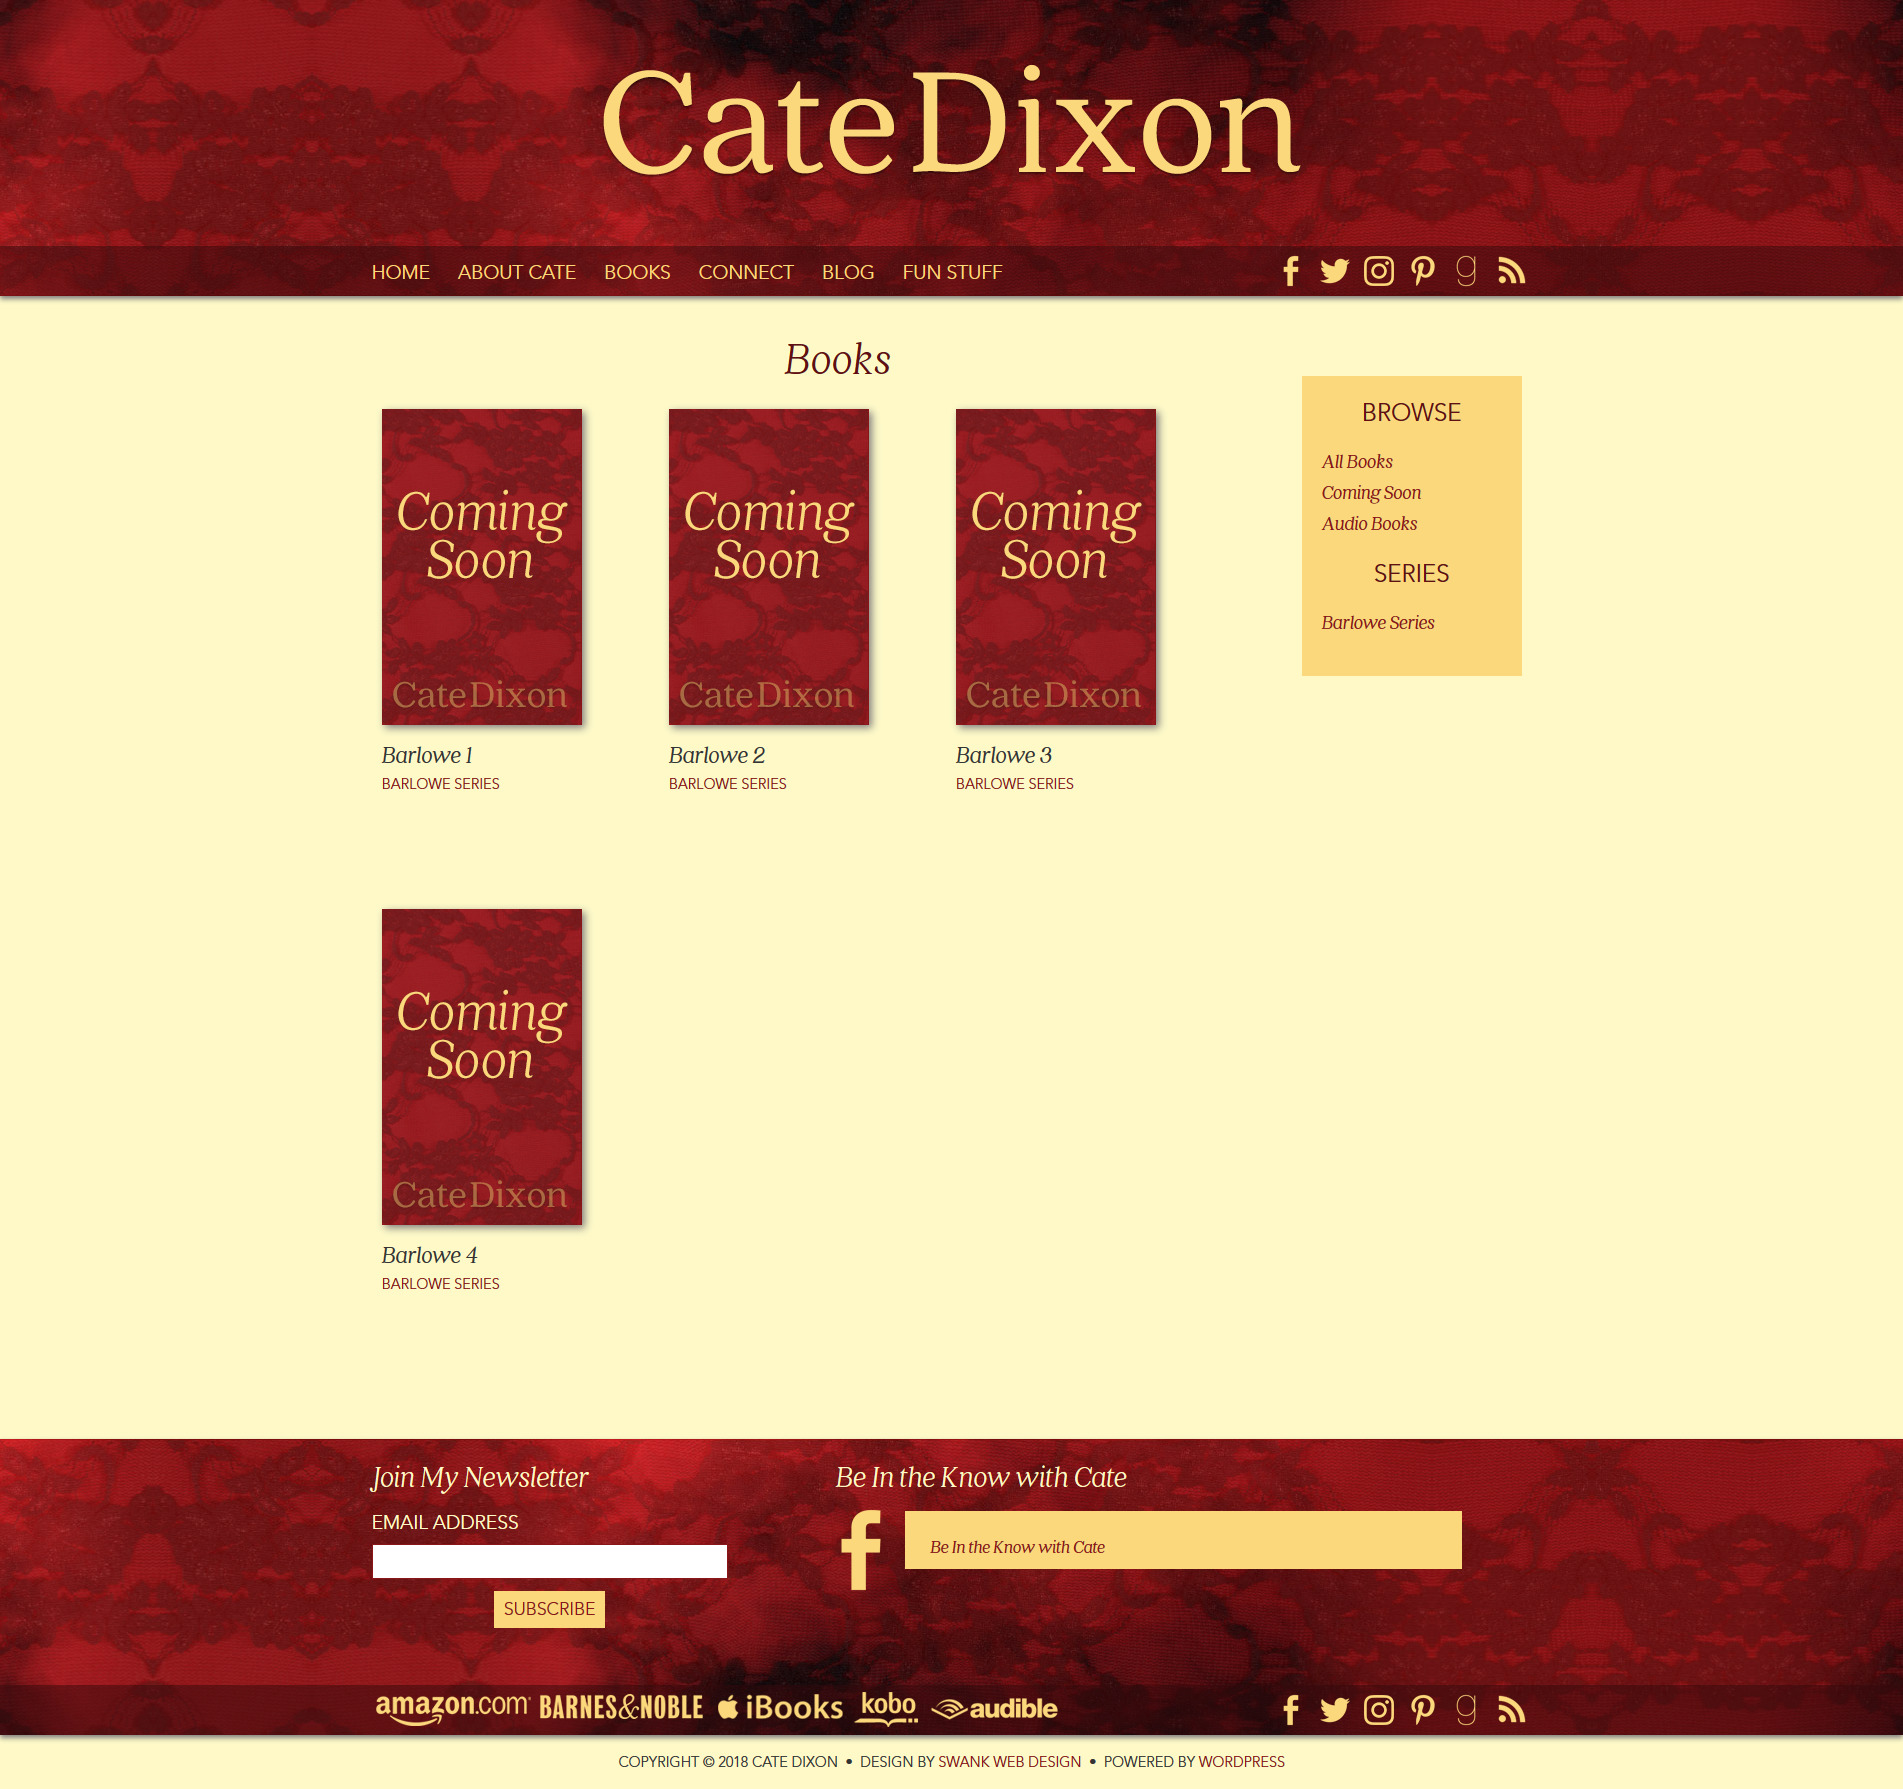 Website Design for Author Cate Dixon by Swank Web Design